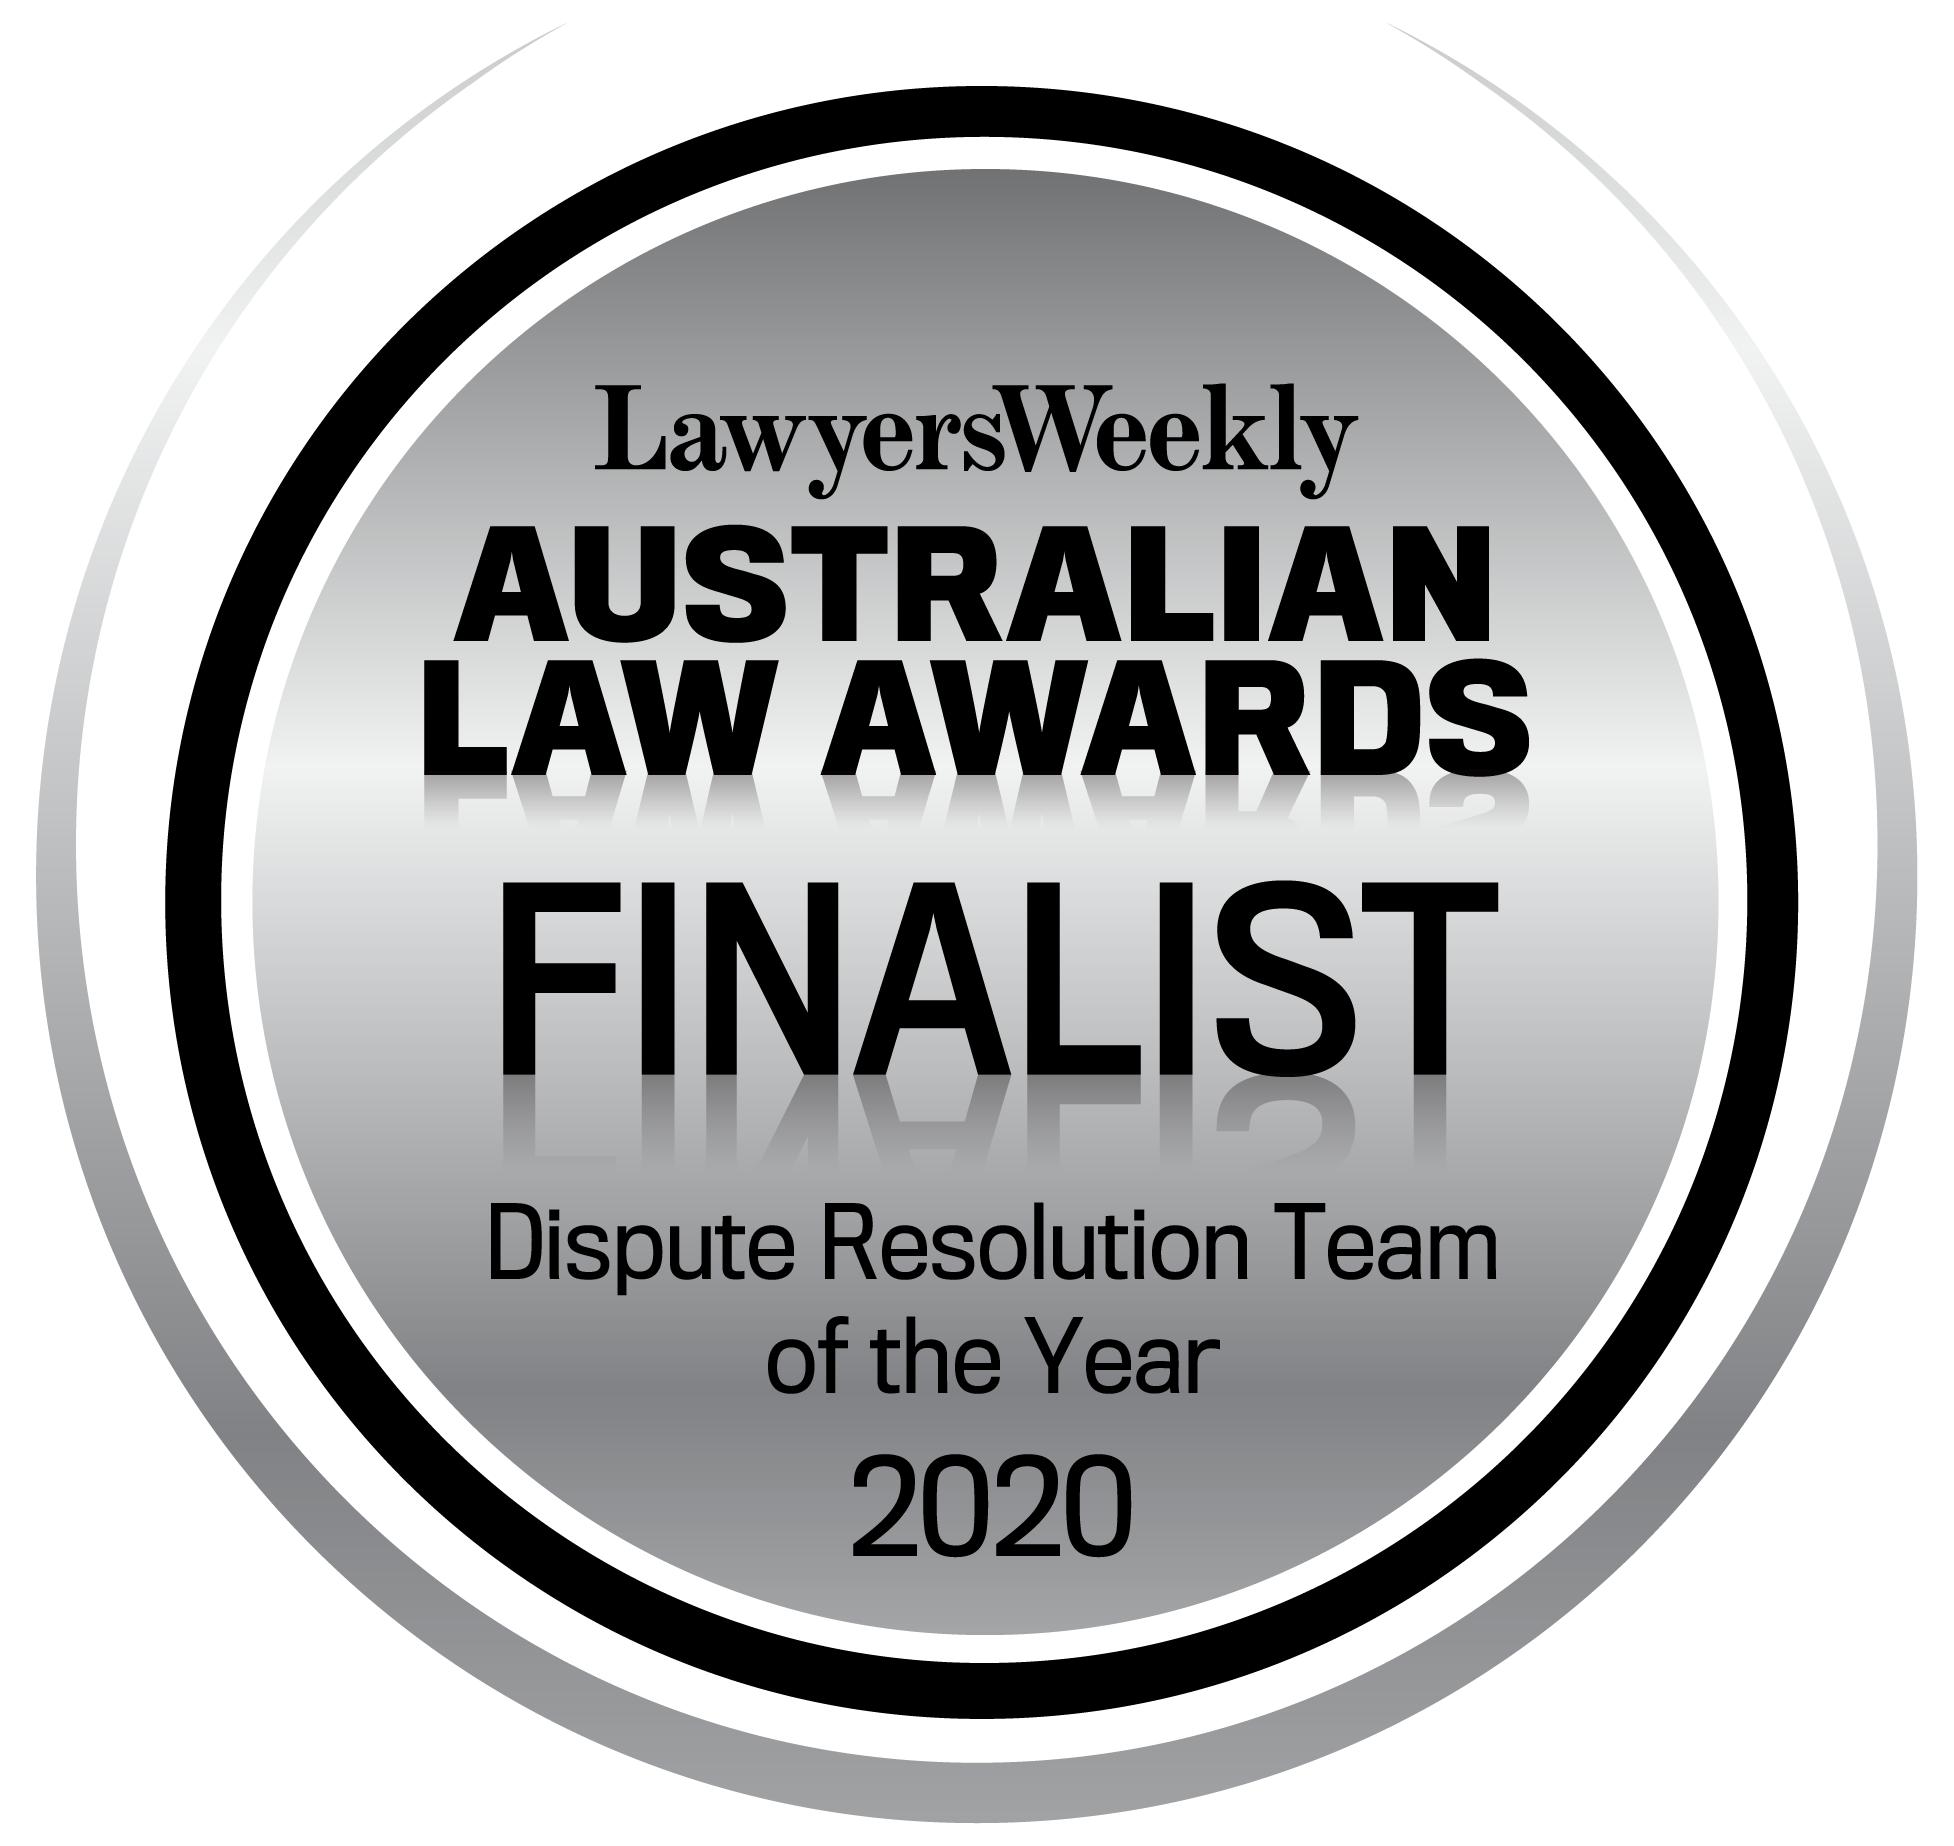 ALA 2020 Finalist Dispute Resolution Team of the Year